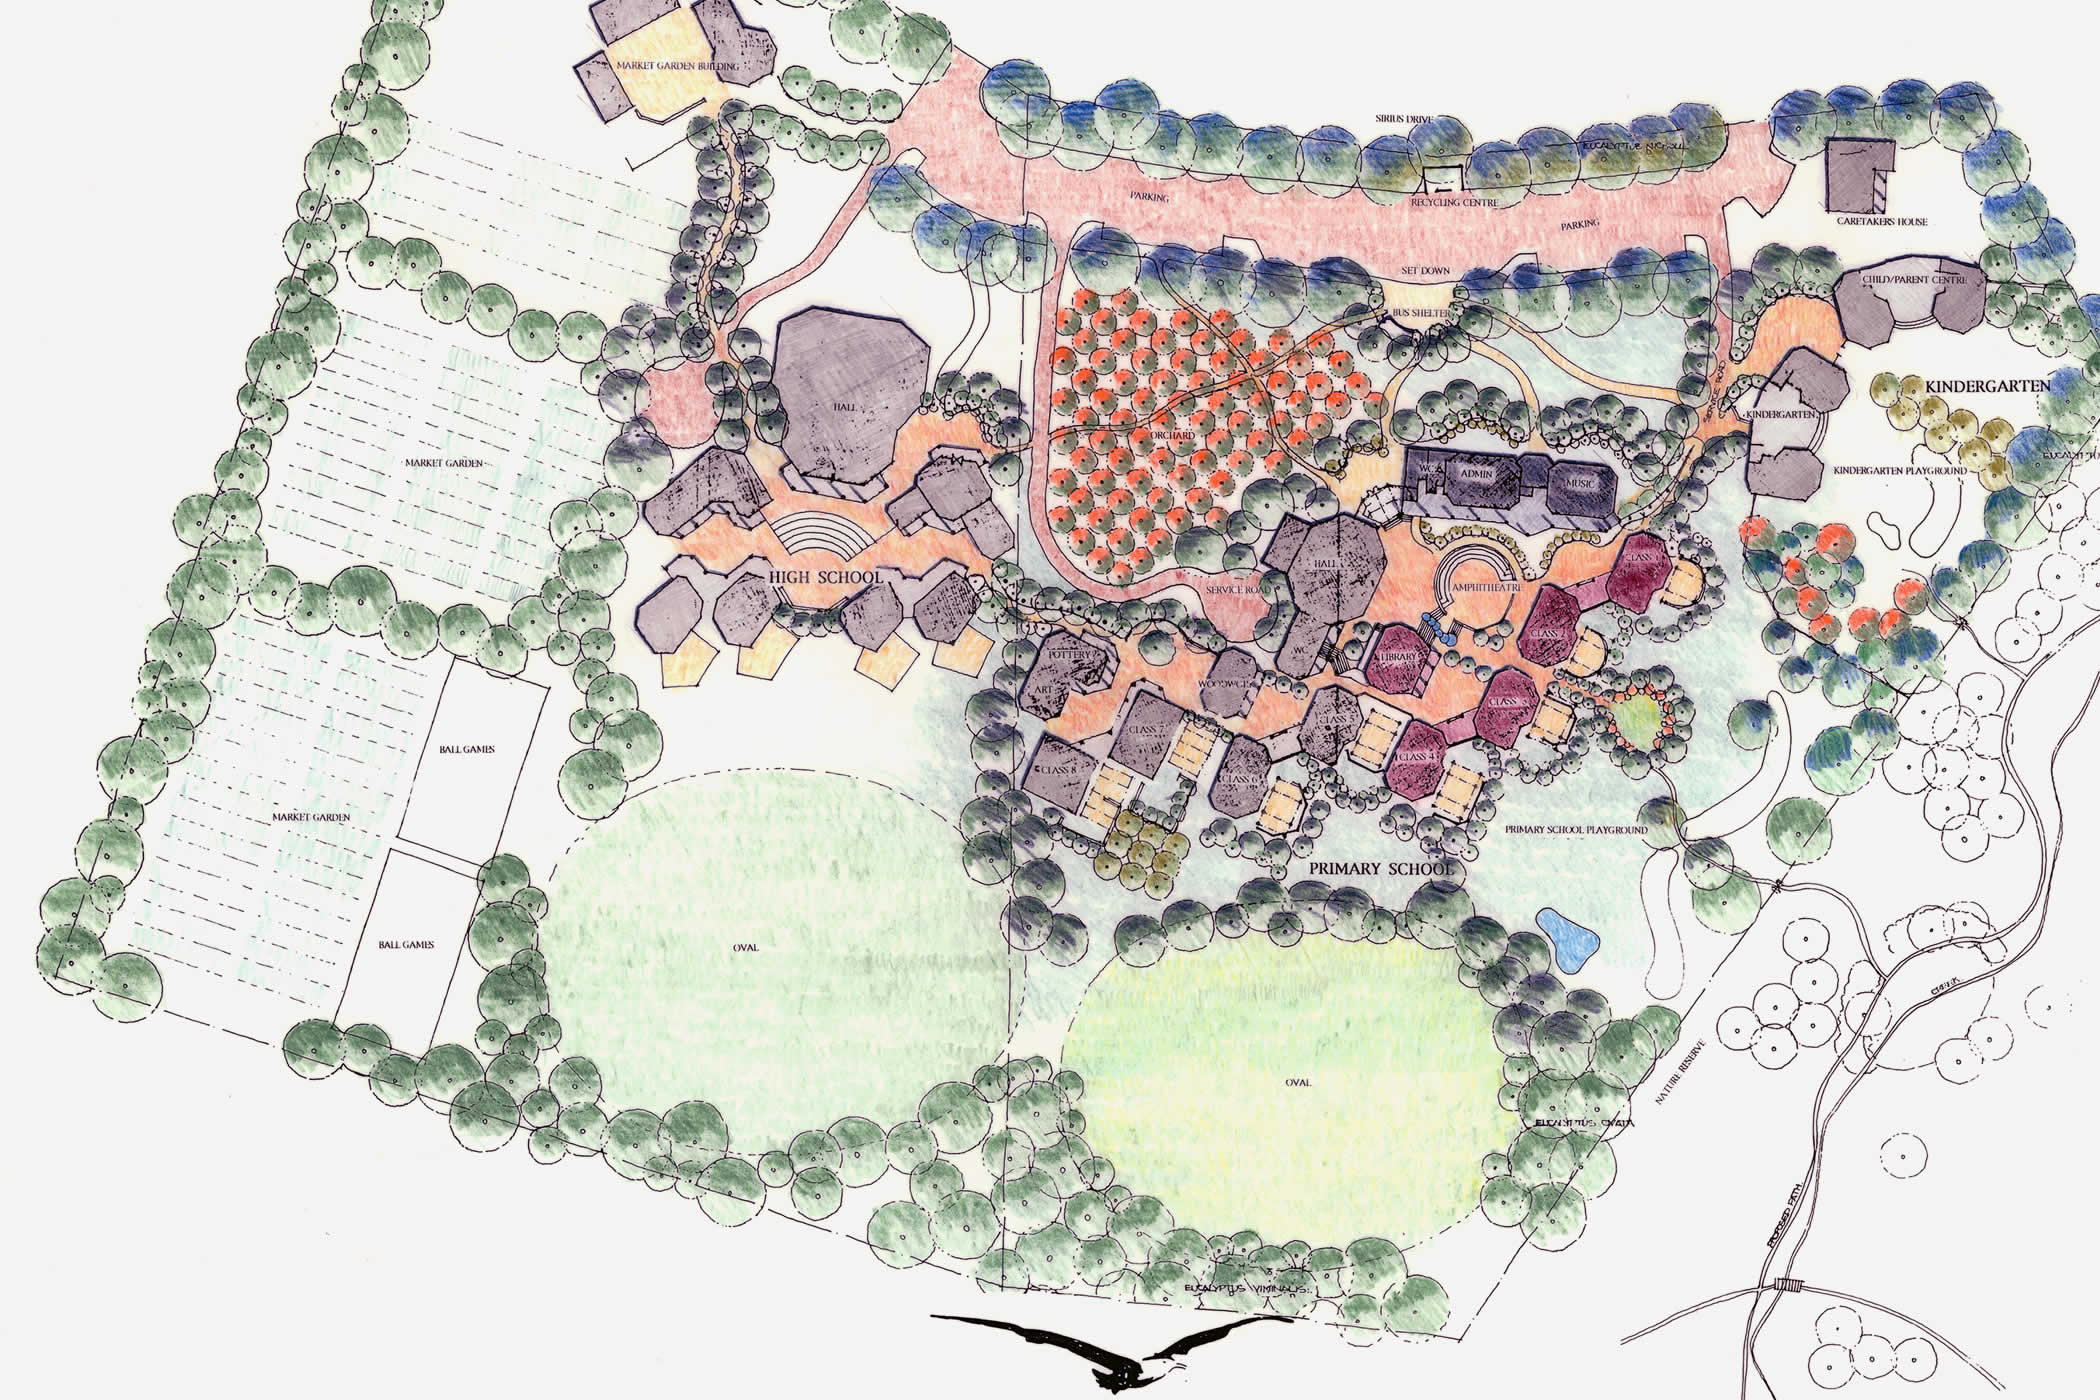 Tarremah Steiner School, Huntingfield, Tasmania master plan: Phased growth included an Early Childhood Centre, Primary, Middle and High School learning areas, a library, music room and multi-purpose Hall, and year 10 art and science learning areas.